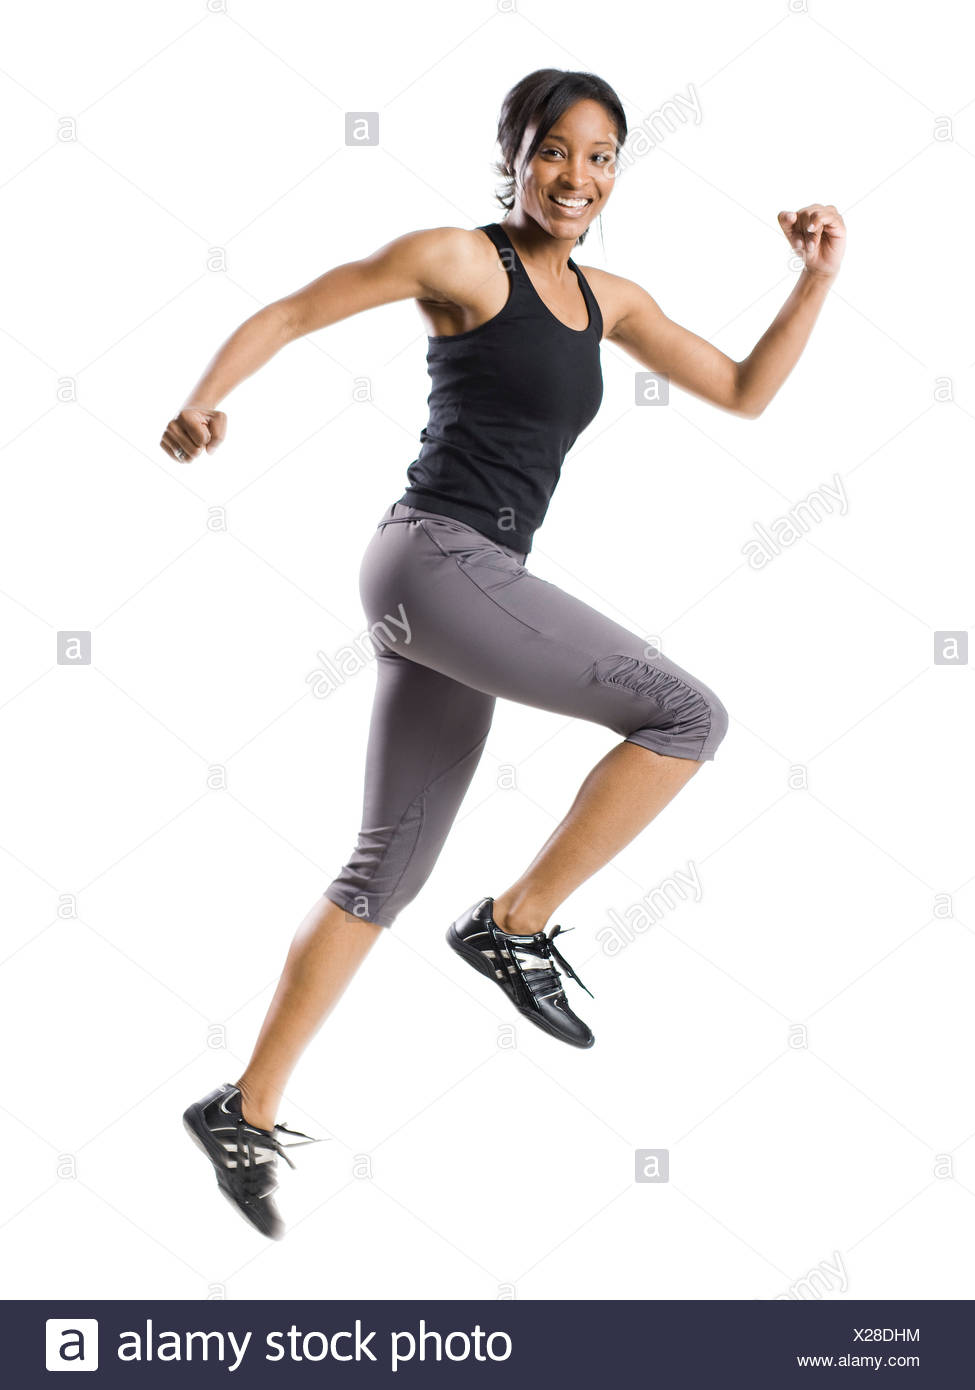 woman working out - Stock Image